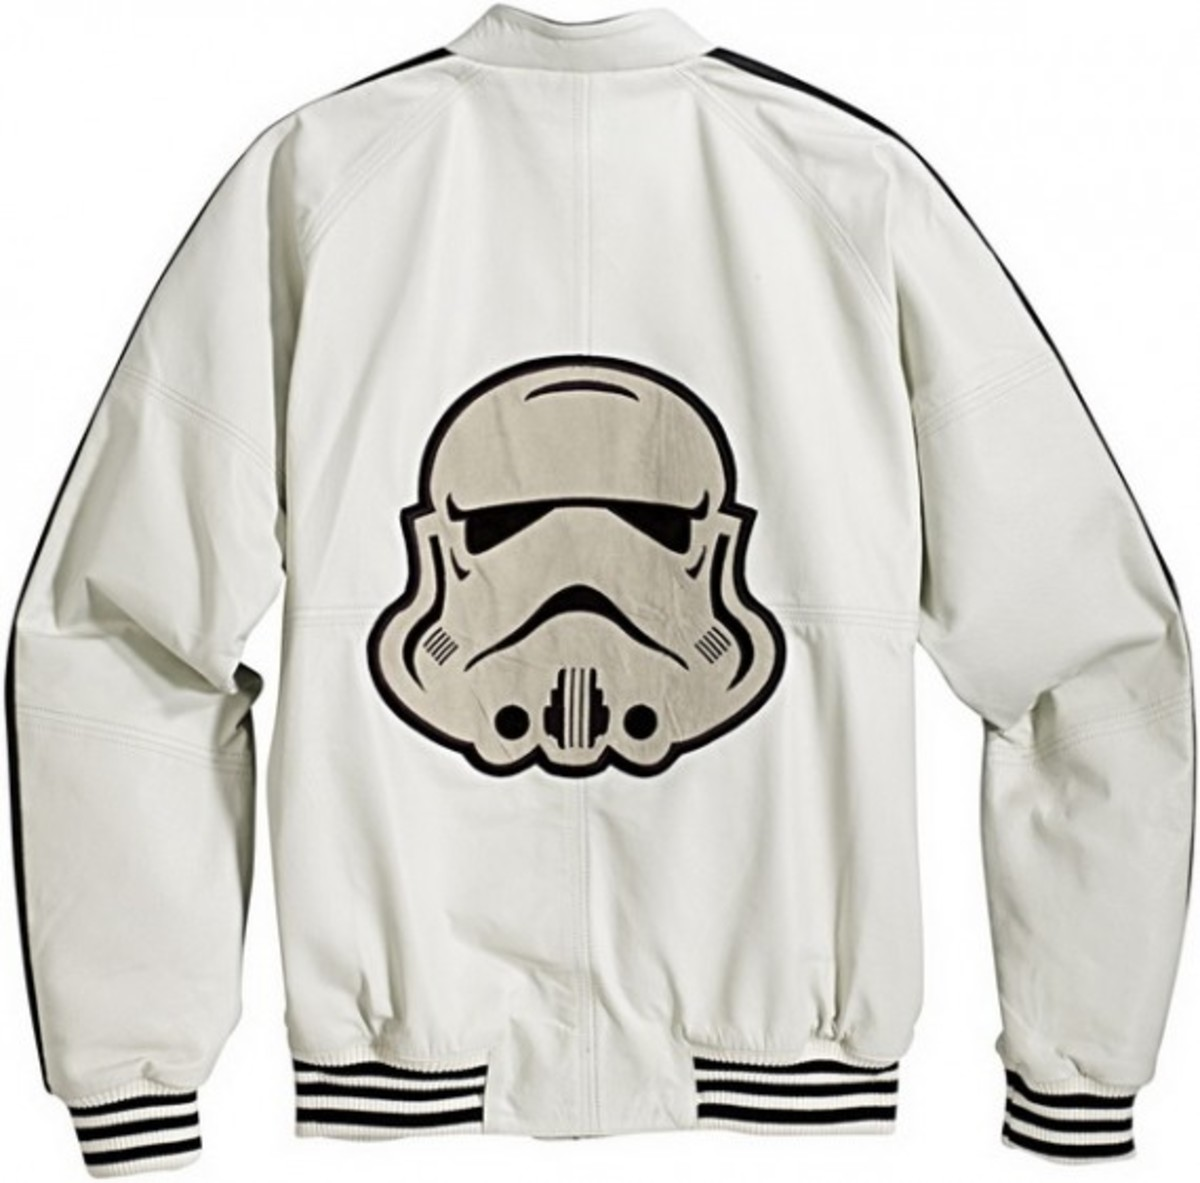 star-wars-adidas-originals-2011-apparel-37